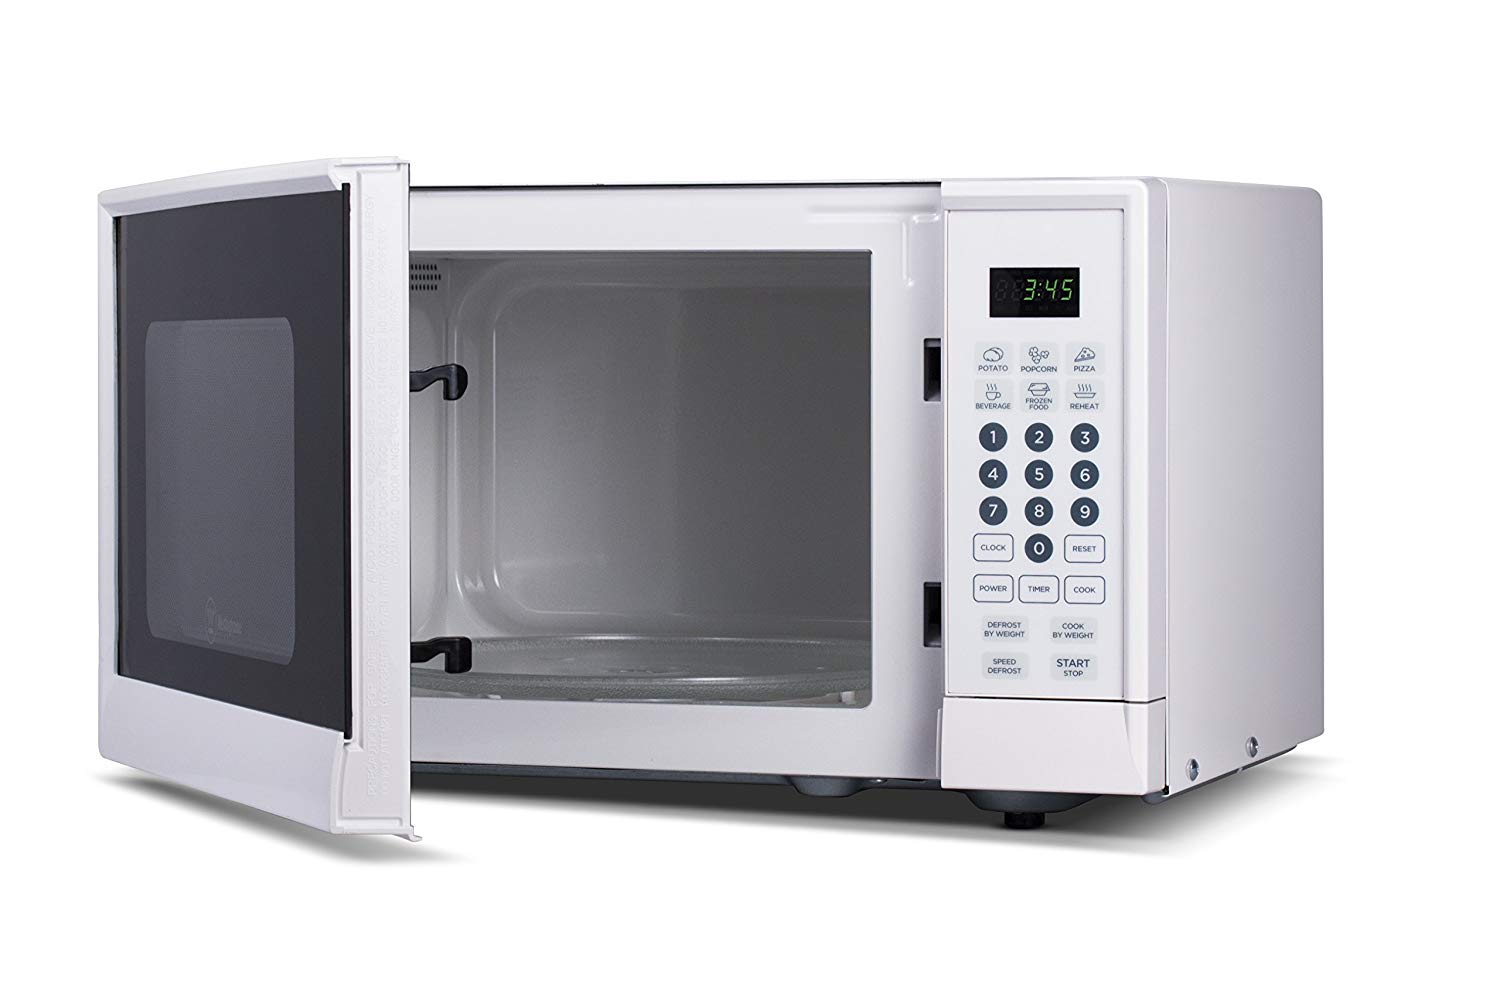 Westinghouse WCM990W 0.9 Cubic Feet 900 Watt Counter Top Microwave Oven